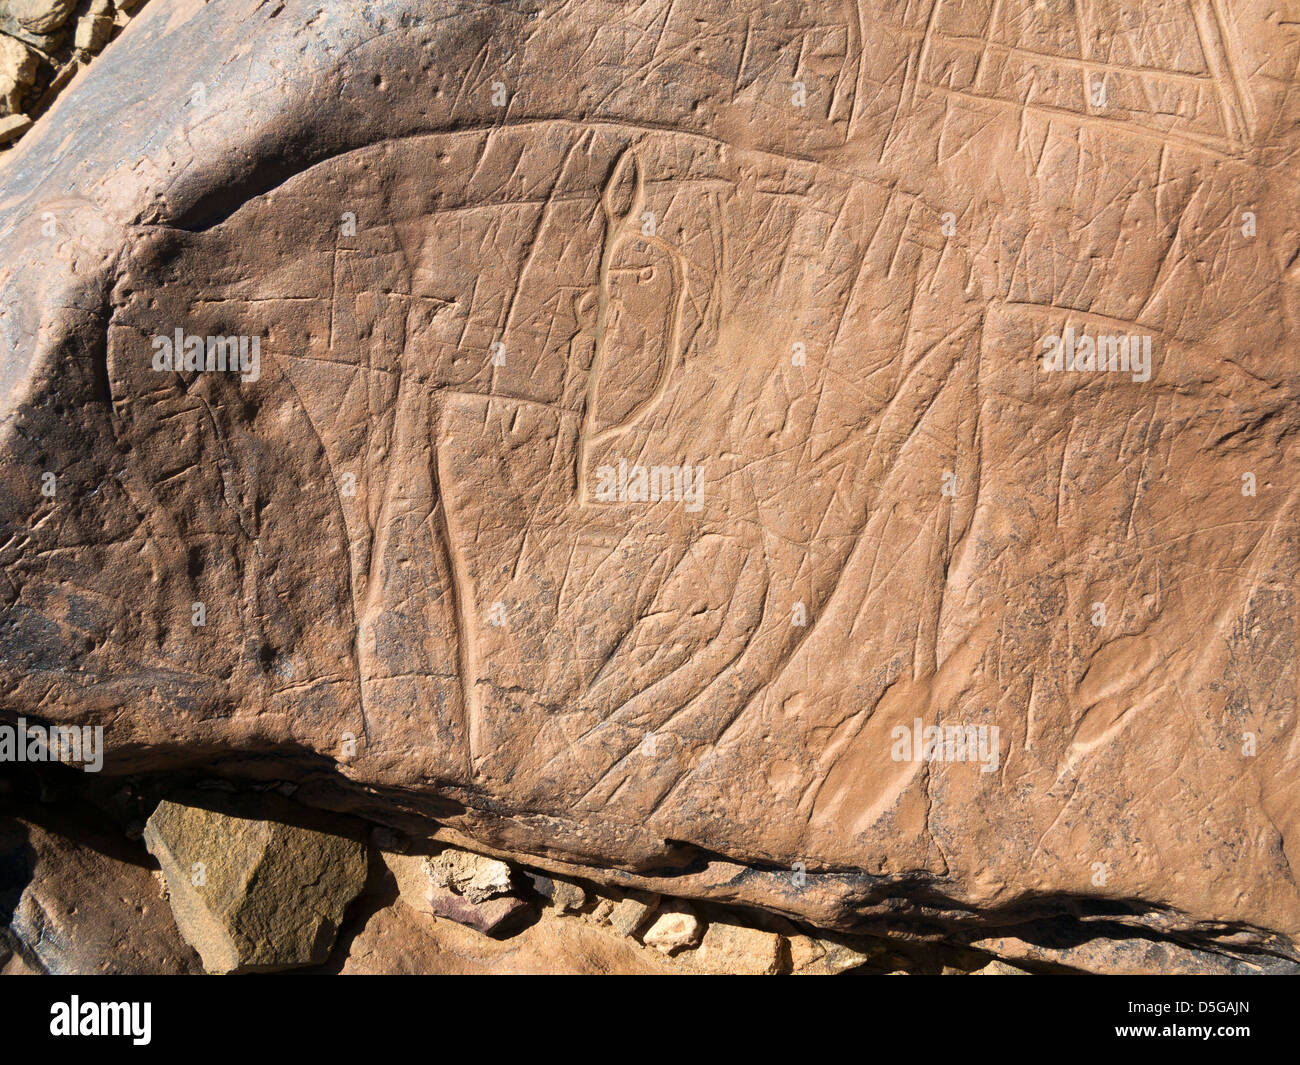 Prehistoric rock carvings at Oued Mestakou on the Tata to Akka road in Morocco. - Stock Image